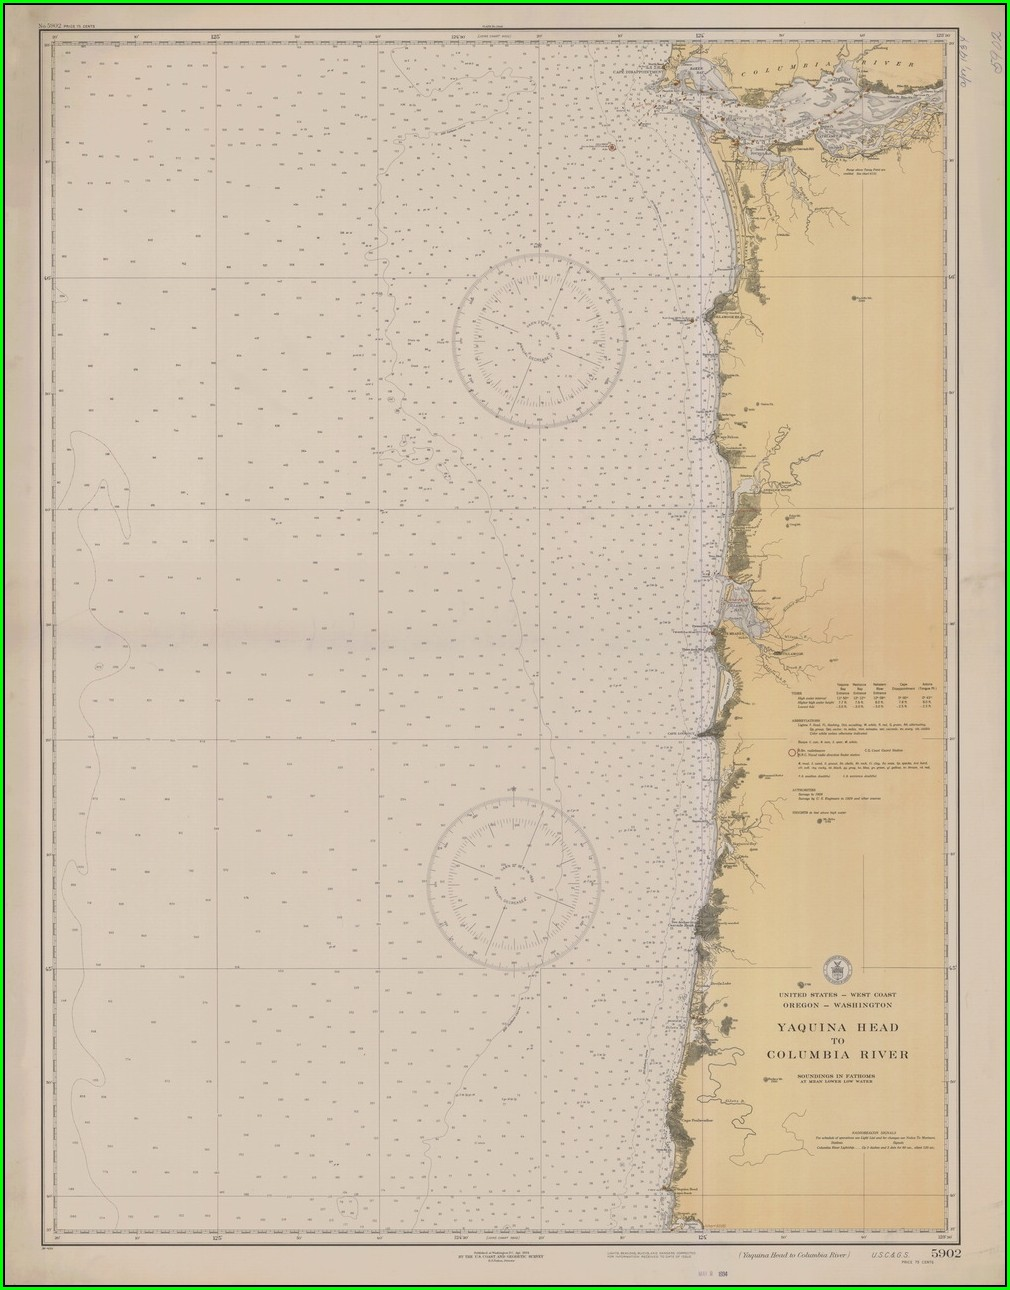 Columbia River Nautical Map